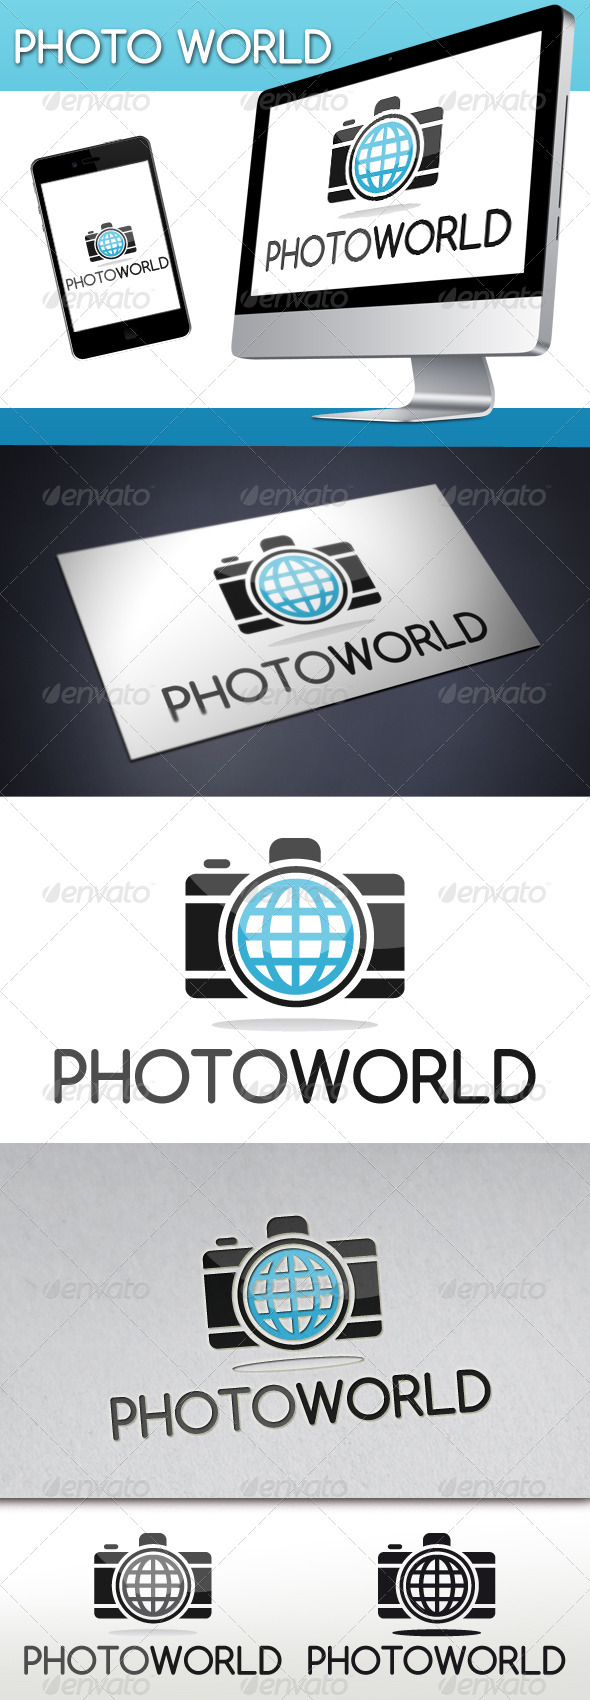 Photo World Logo